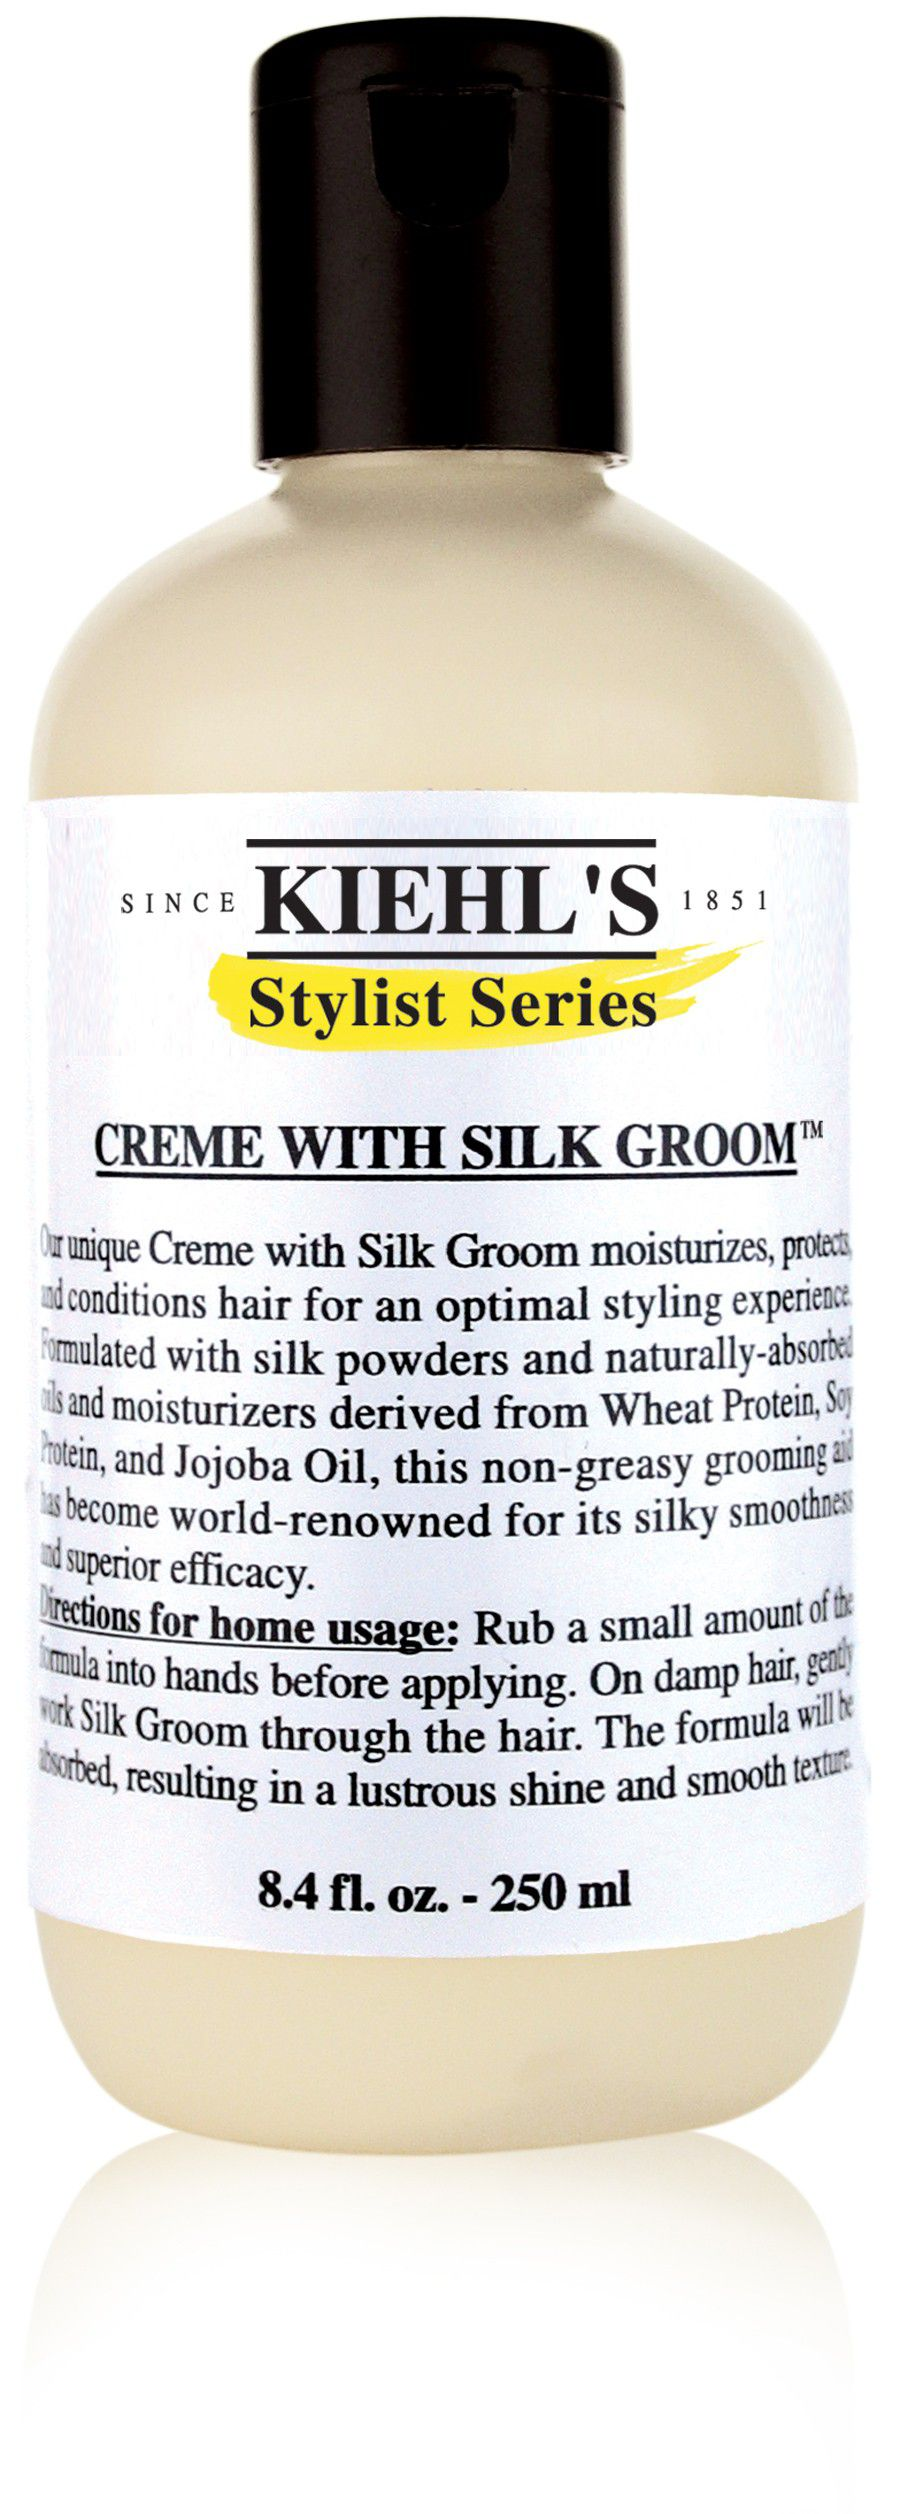 Creme With Silk Groom